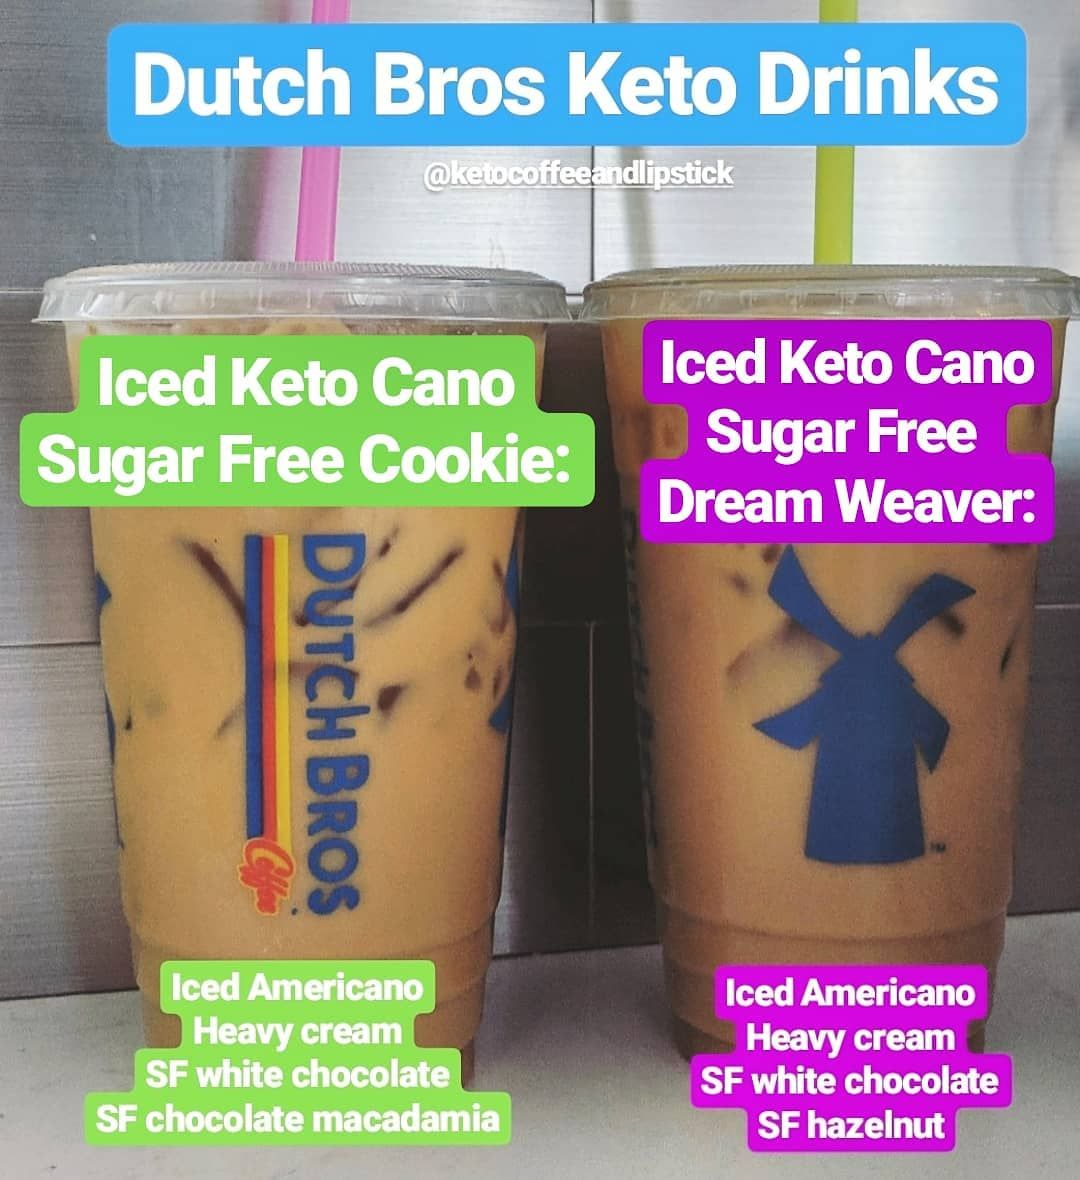 No photo description available. #dutchbros